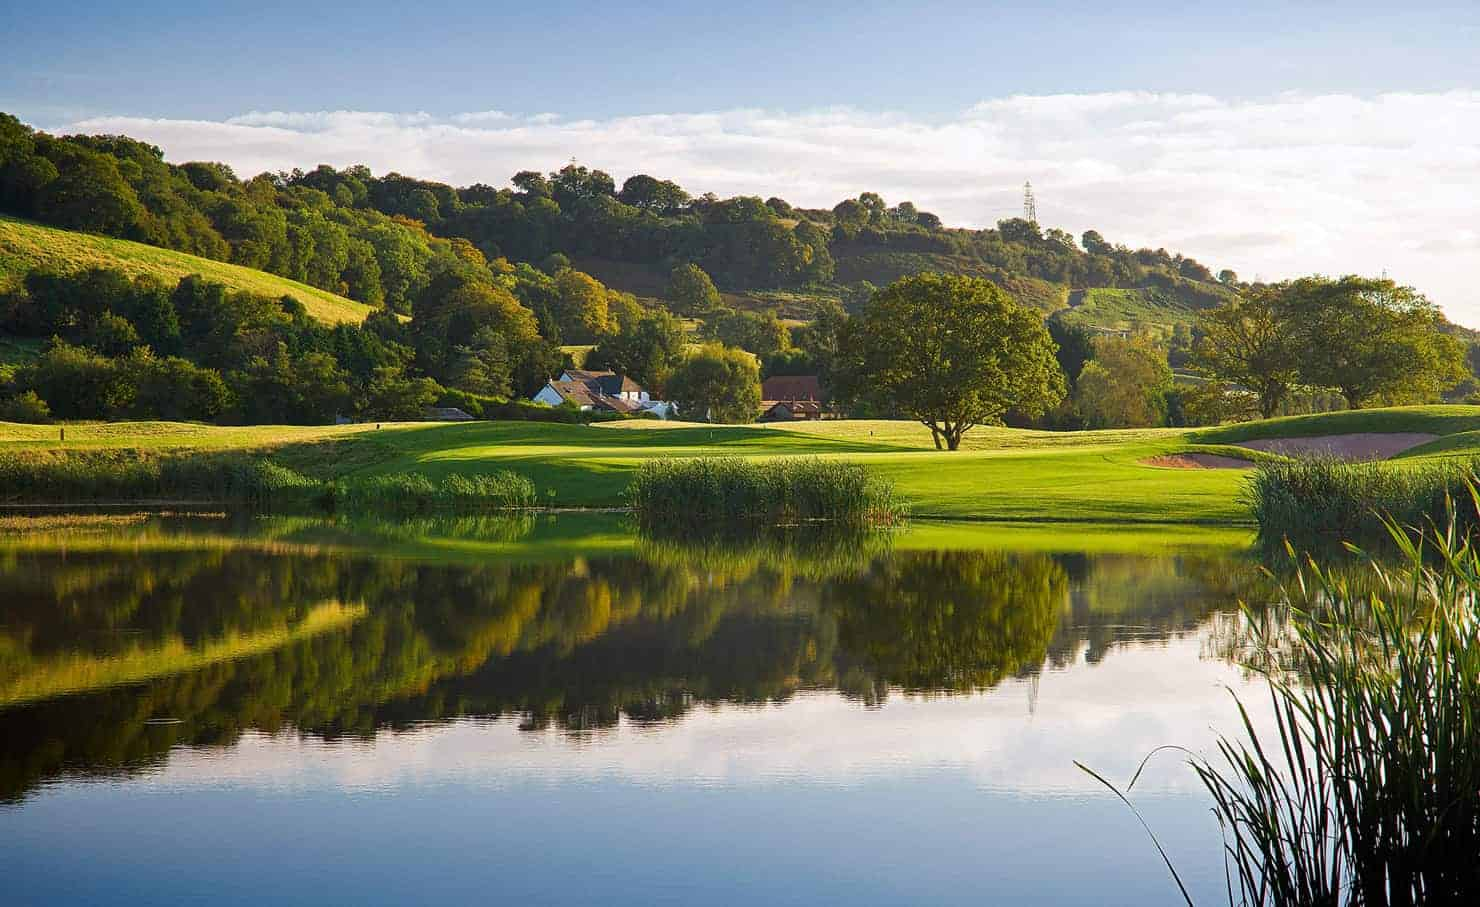 Celtic Manor Golf Resort, Coldra Court, Newport, Wales